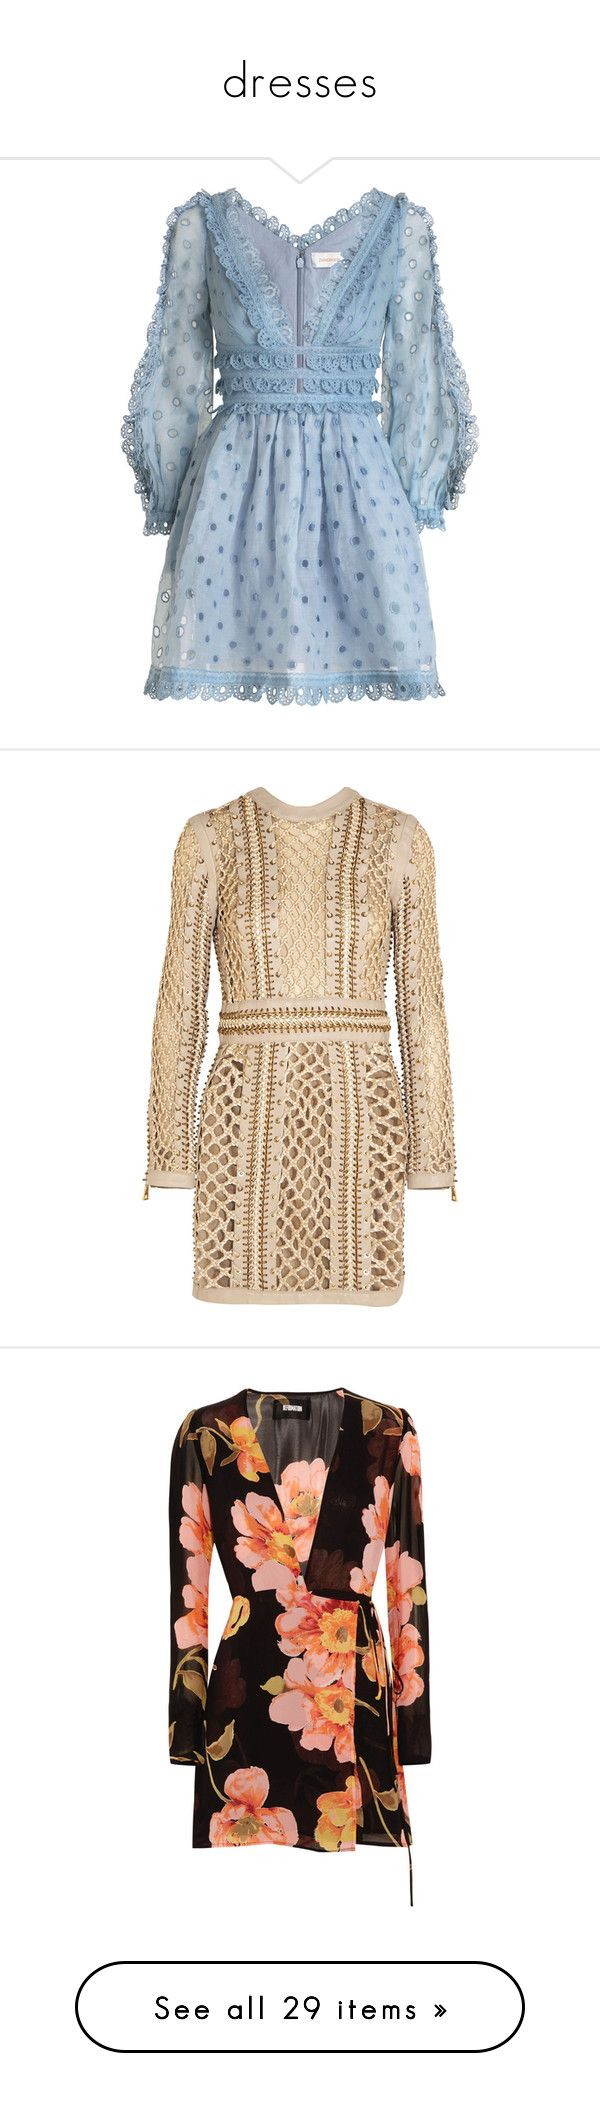 """dresses"" by janeorlova ❤ liked on Polyvore featuring dresses, vestidos, mini dress, embroidery dresses, sleeved dresses, tea party dresses, tea dress, balmain, short dress and beige"